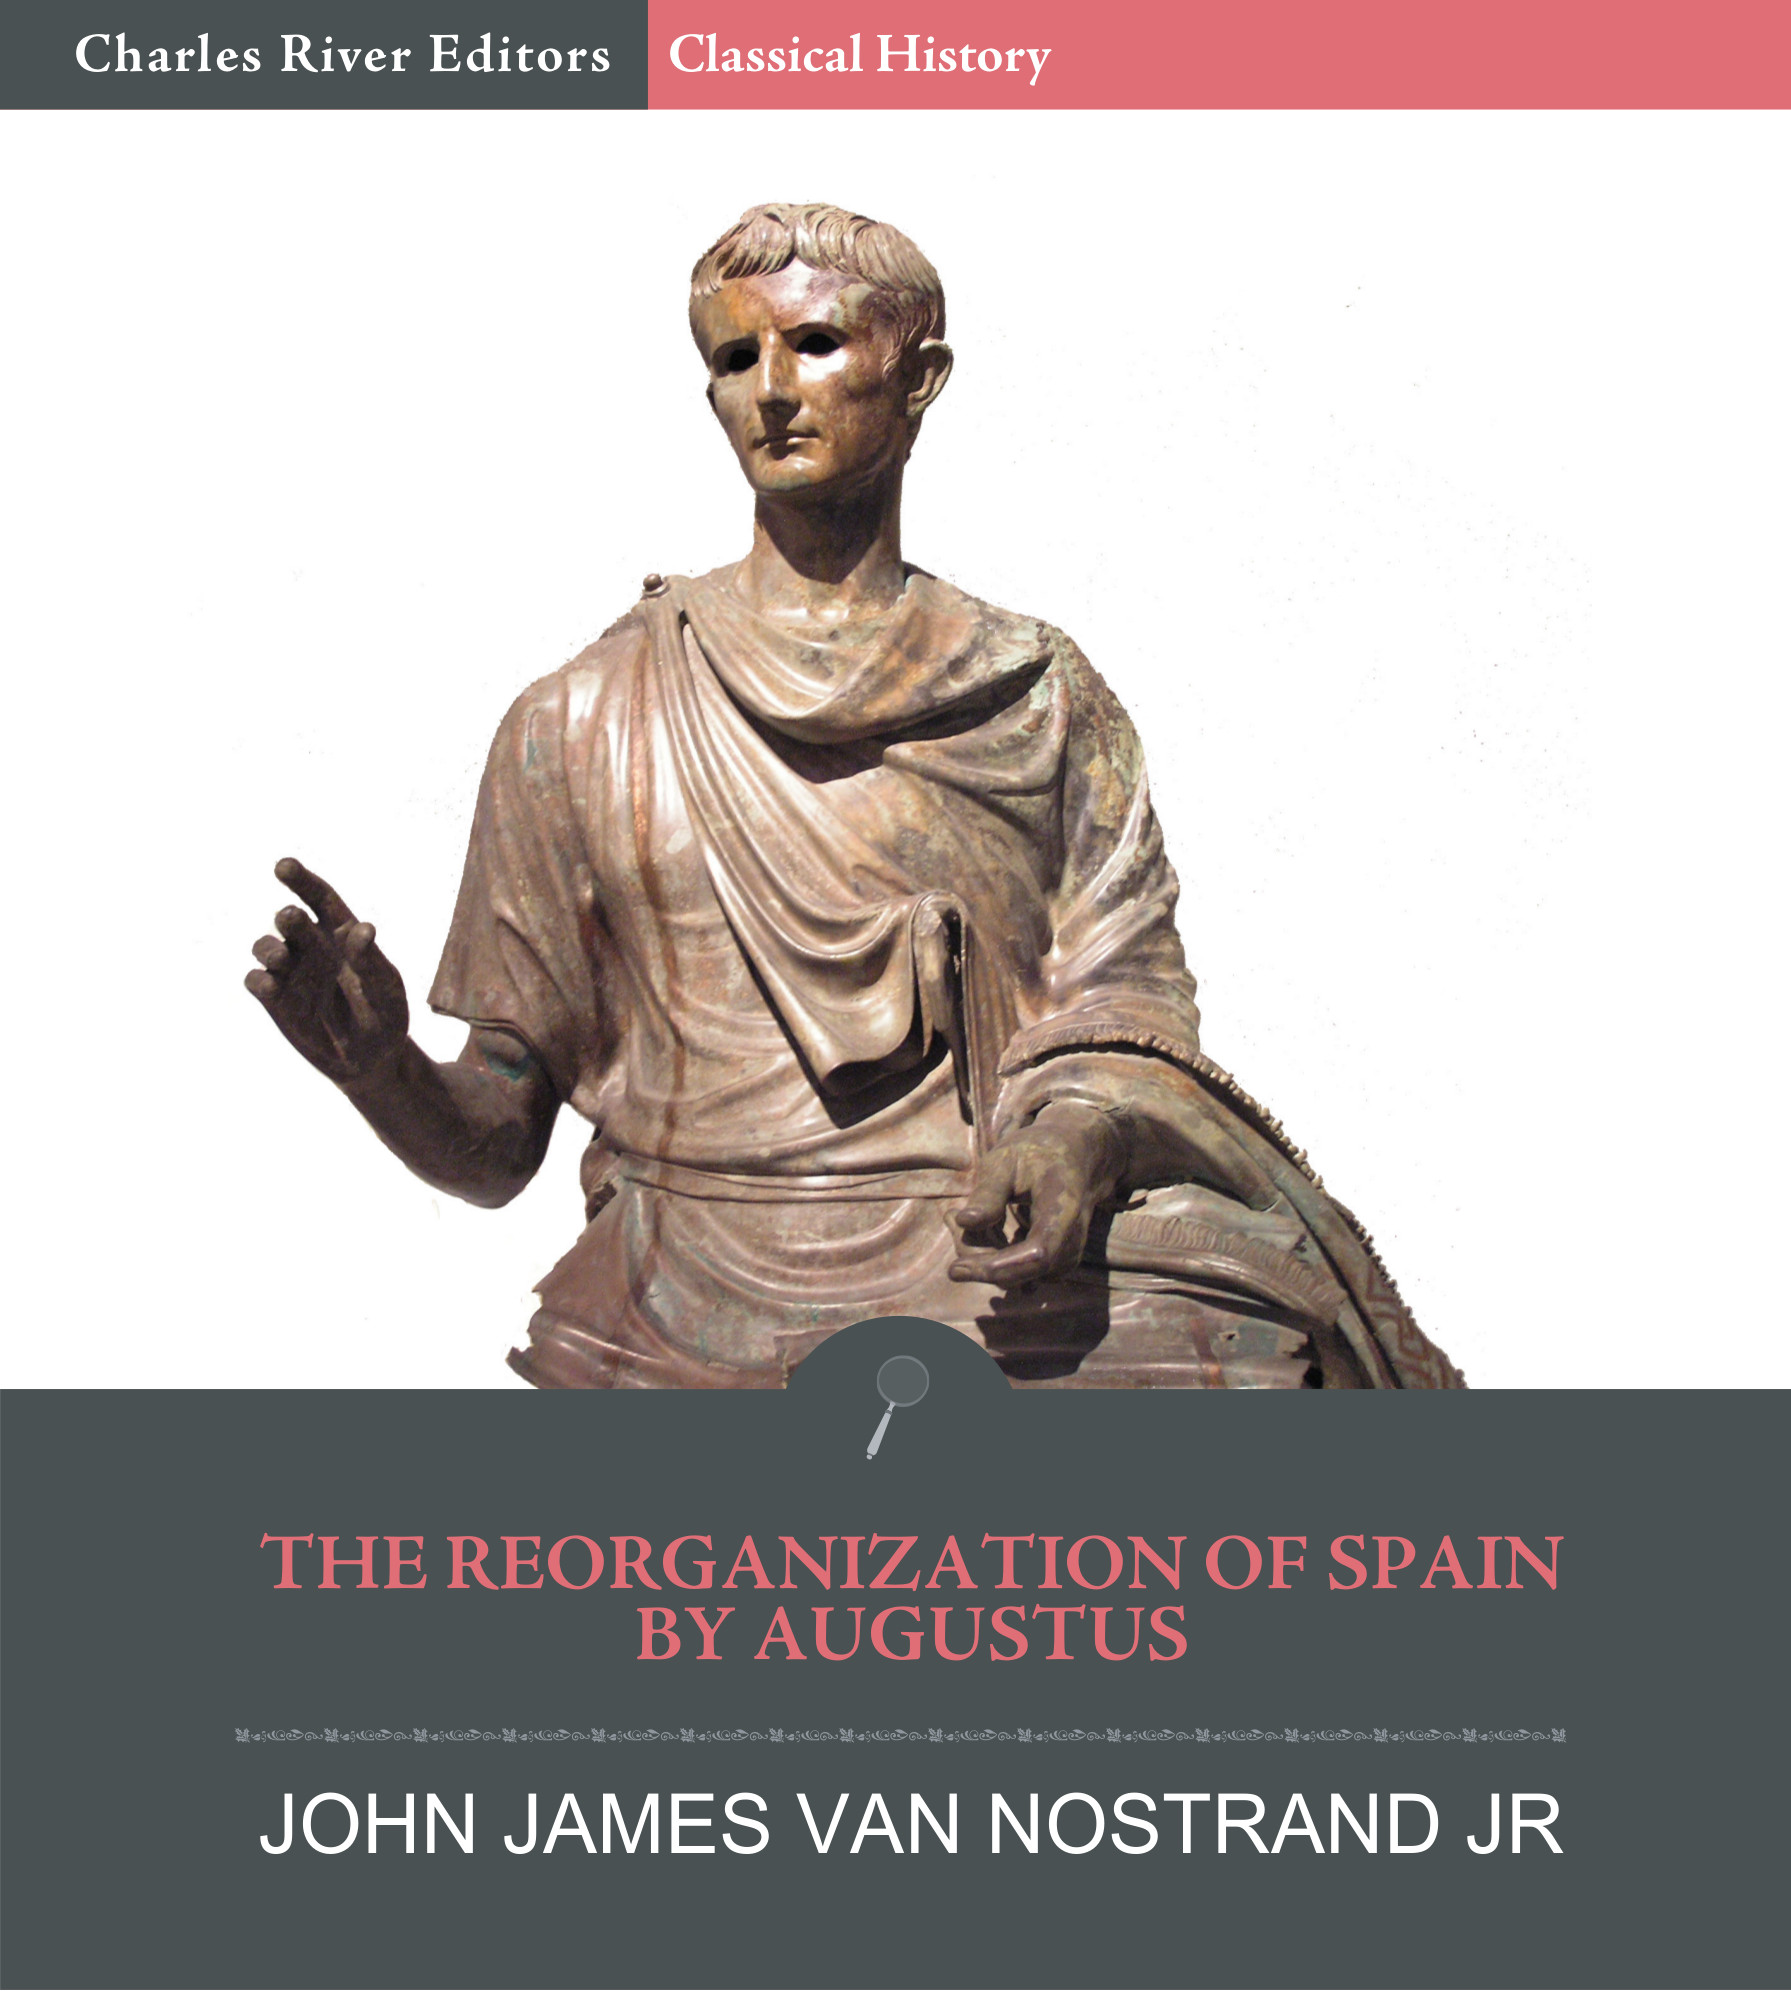 The Reorginzation of Spain by Augustus